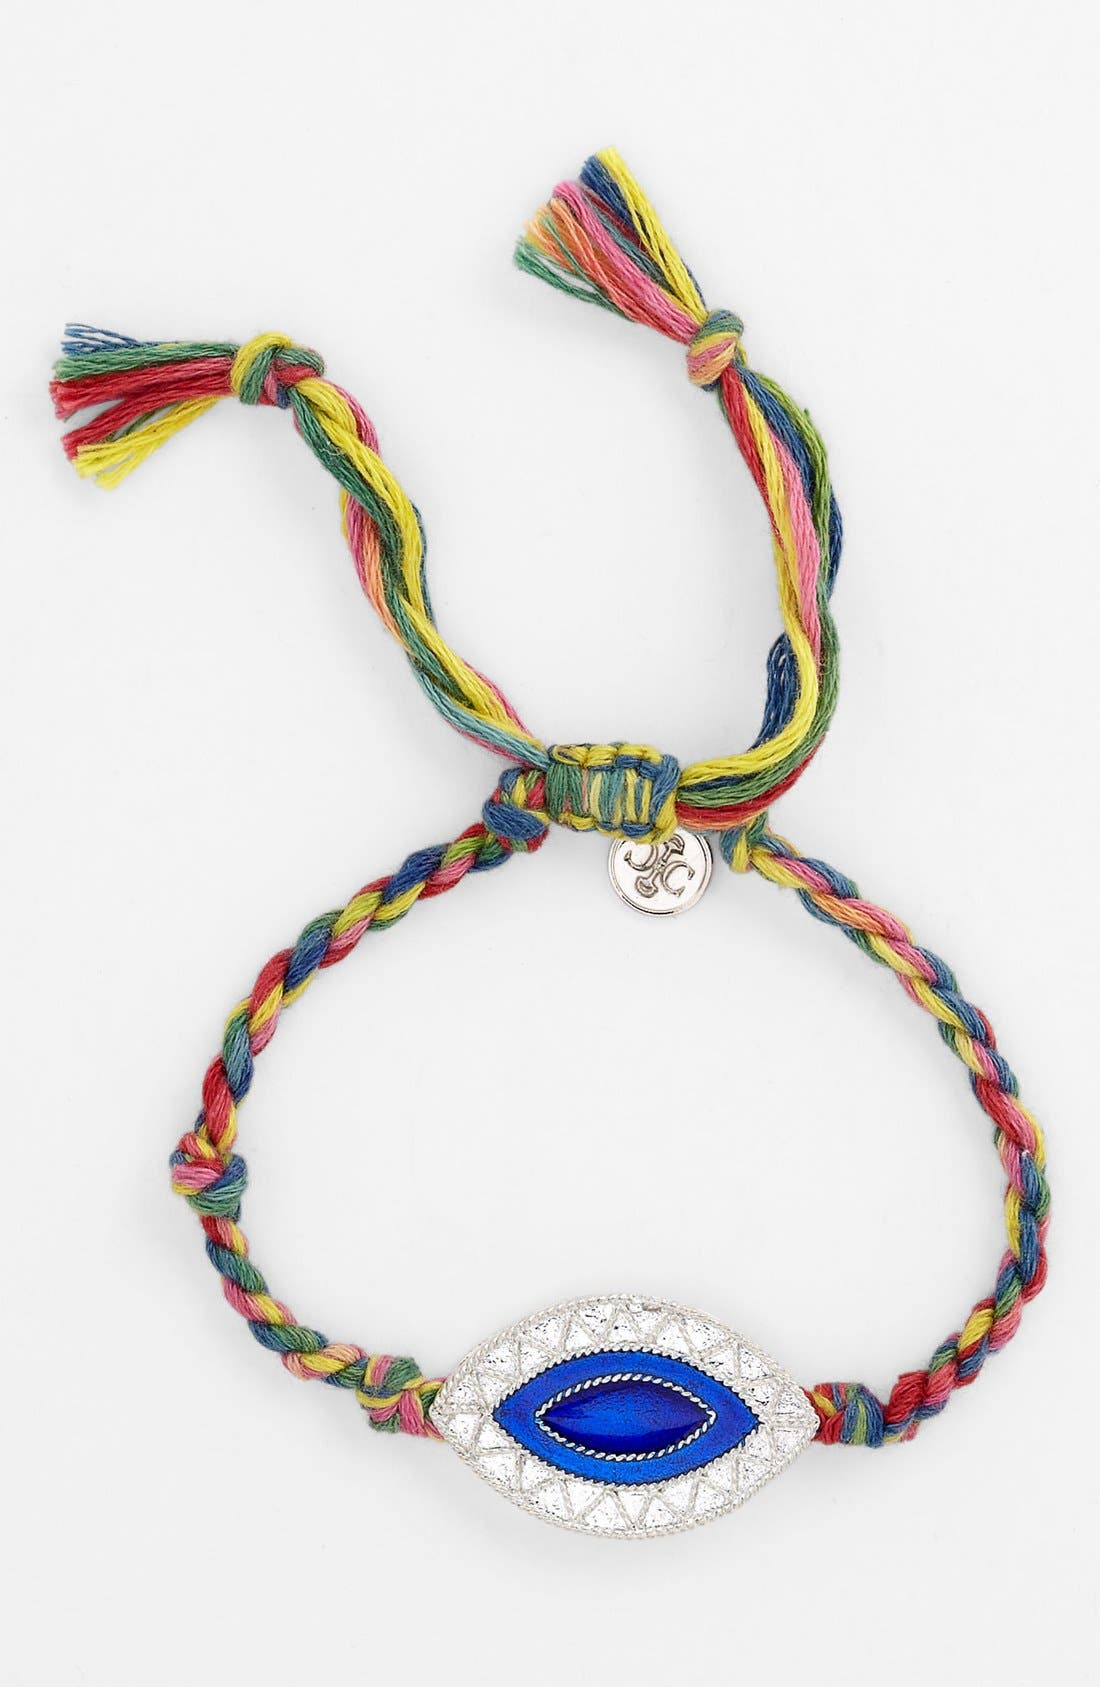 Alternate Image 1 Selected - Carbon Copy Jewelry 'Evil Eye' Braided Bracelet